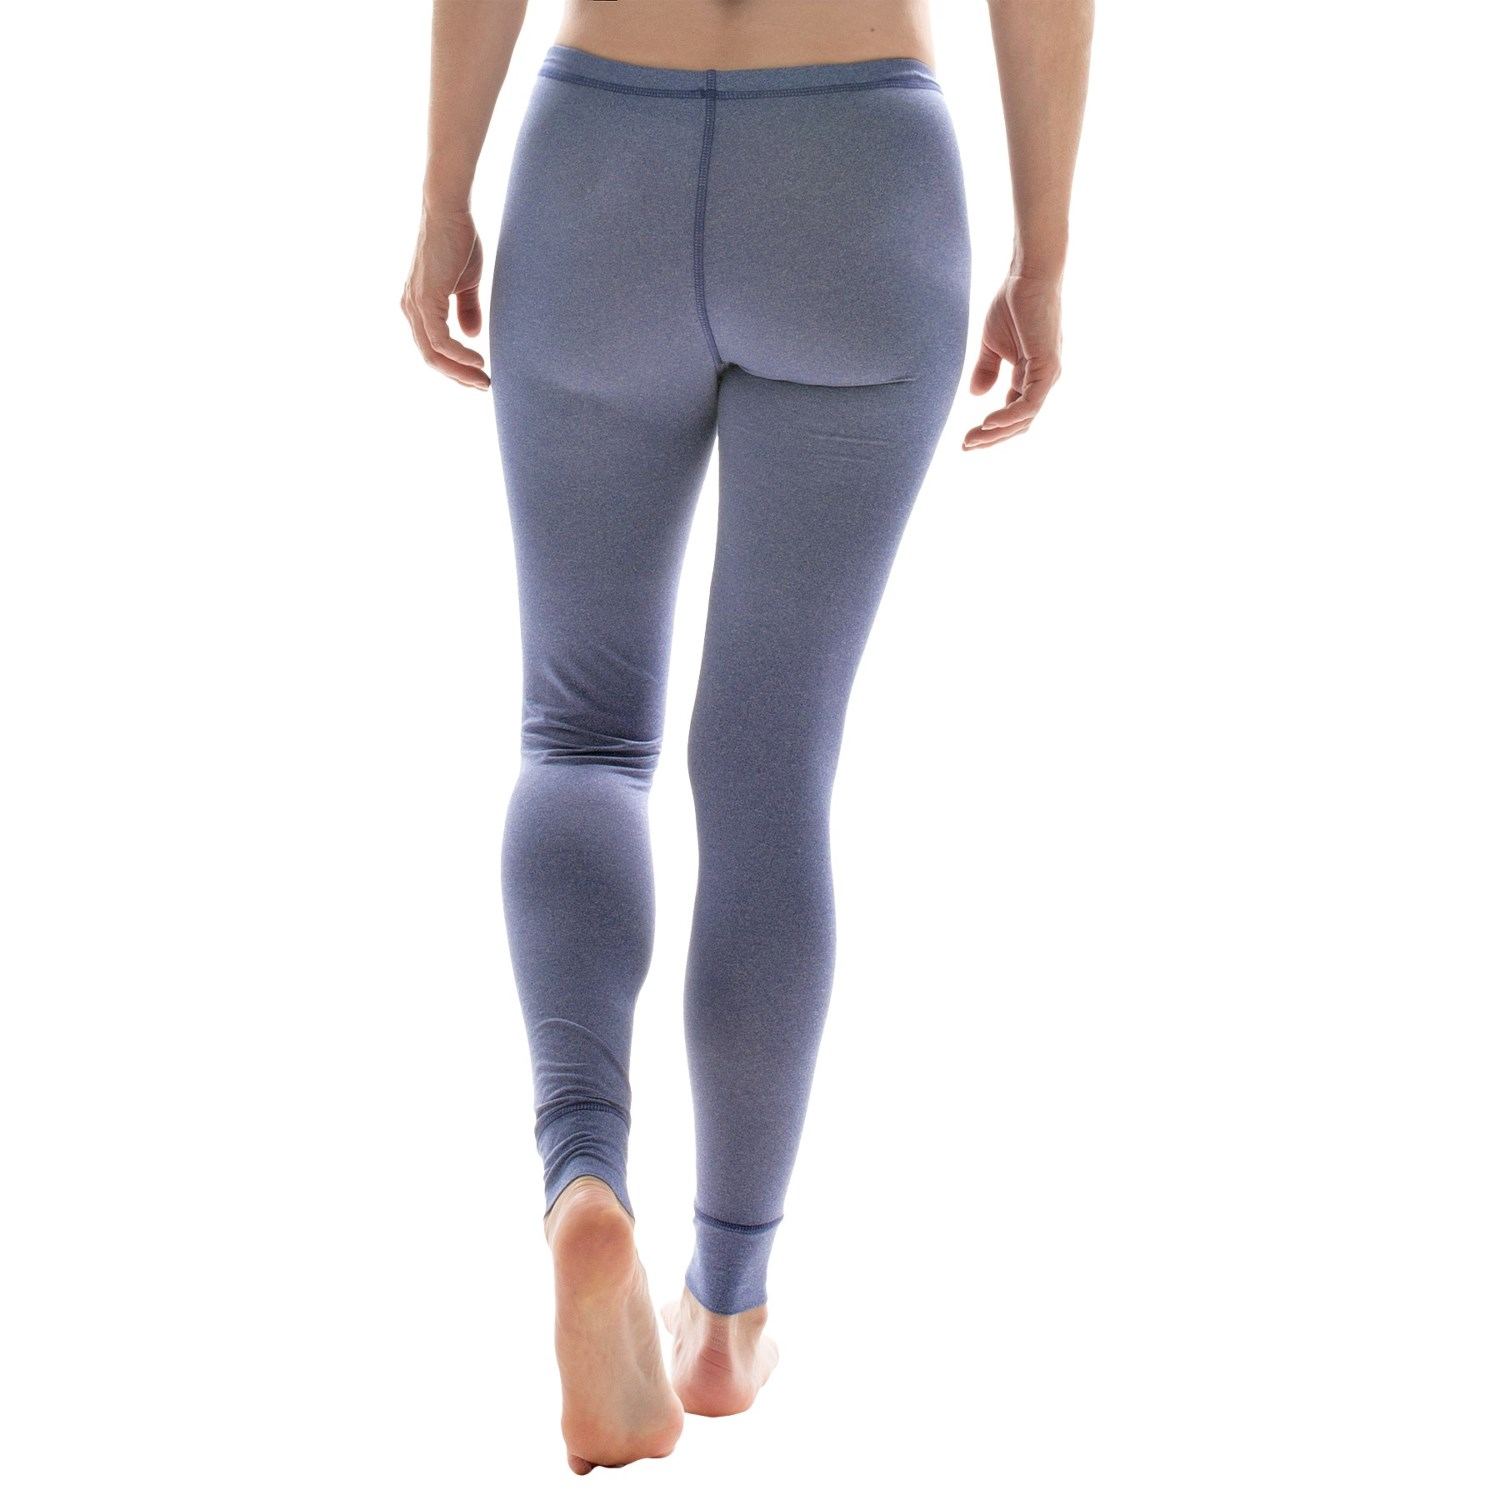 High waisted leggings and spandex leggings can help you shape your body better with the garment's elasticity. If you want a grab-to-go leggings, skirted leggings are the best for you. We have got the plus size leggings as well.